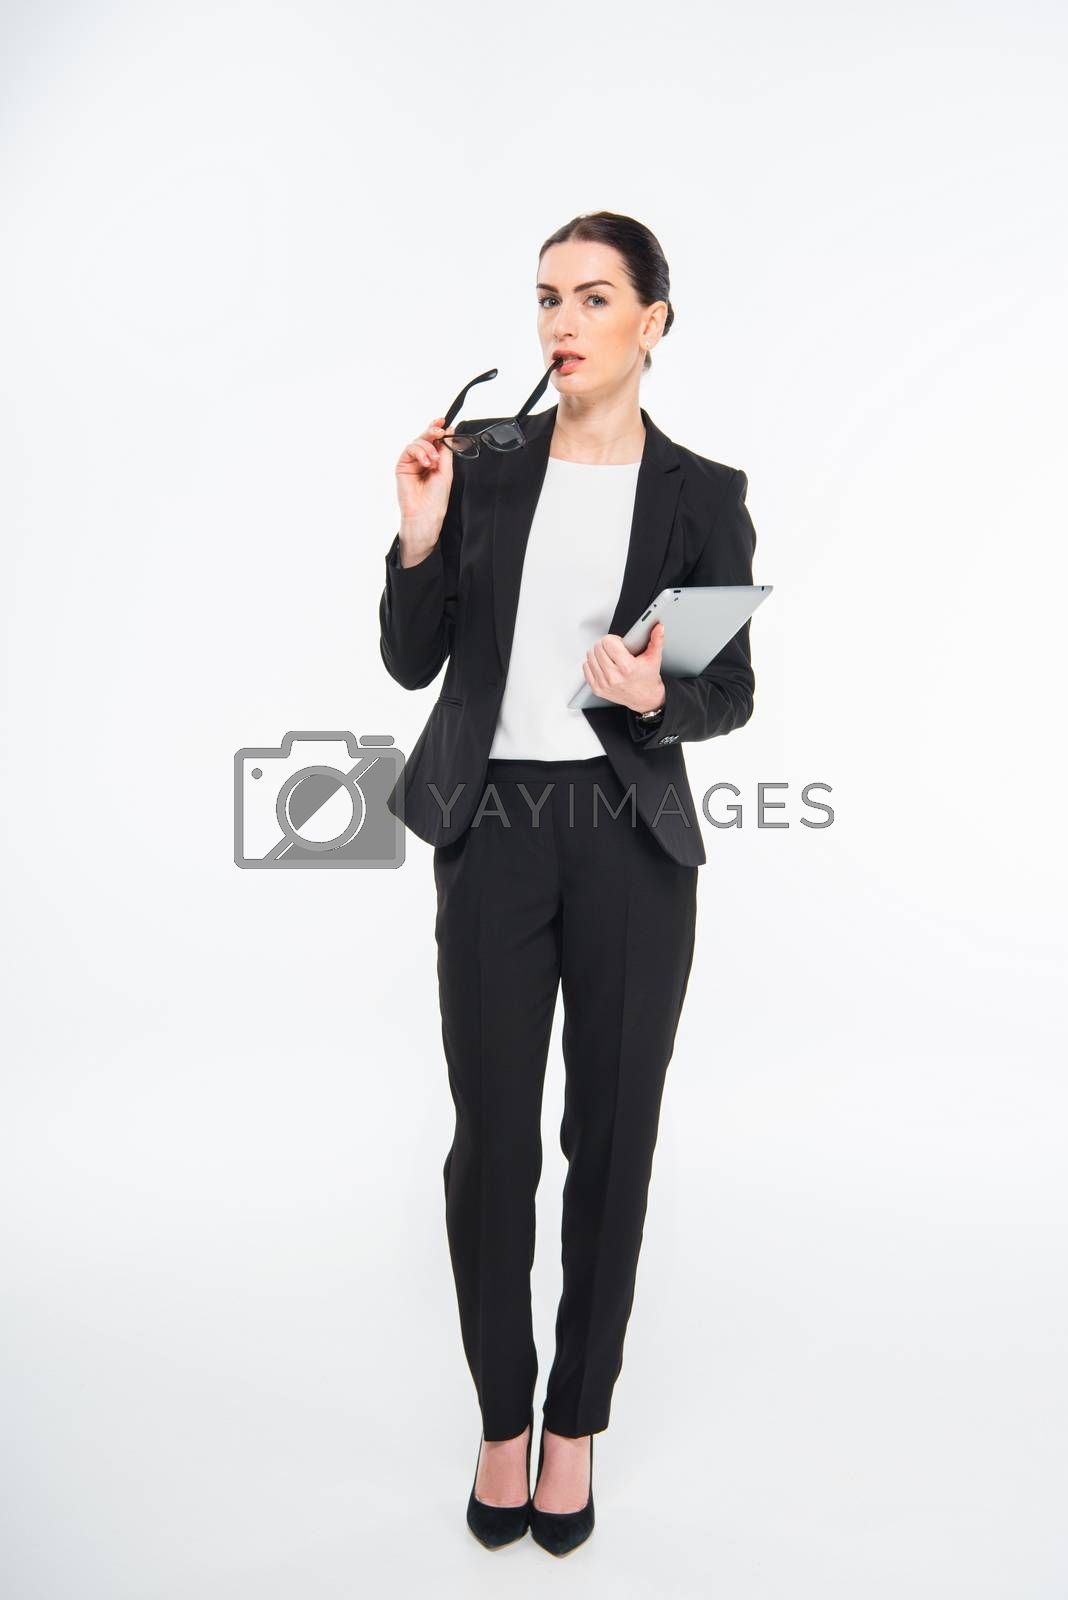 Businesswoman holding digital tablet by LightFieldStudios